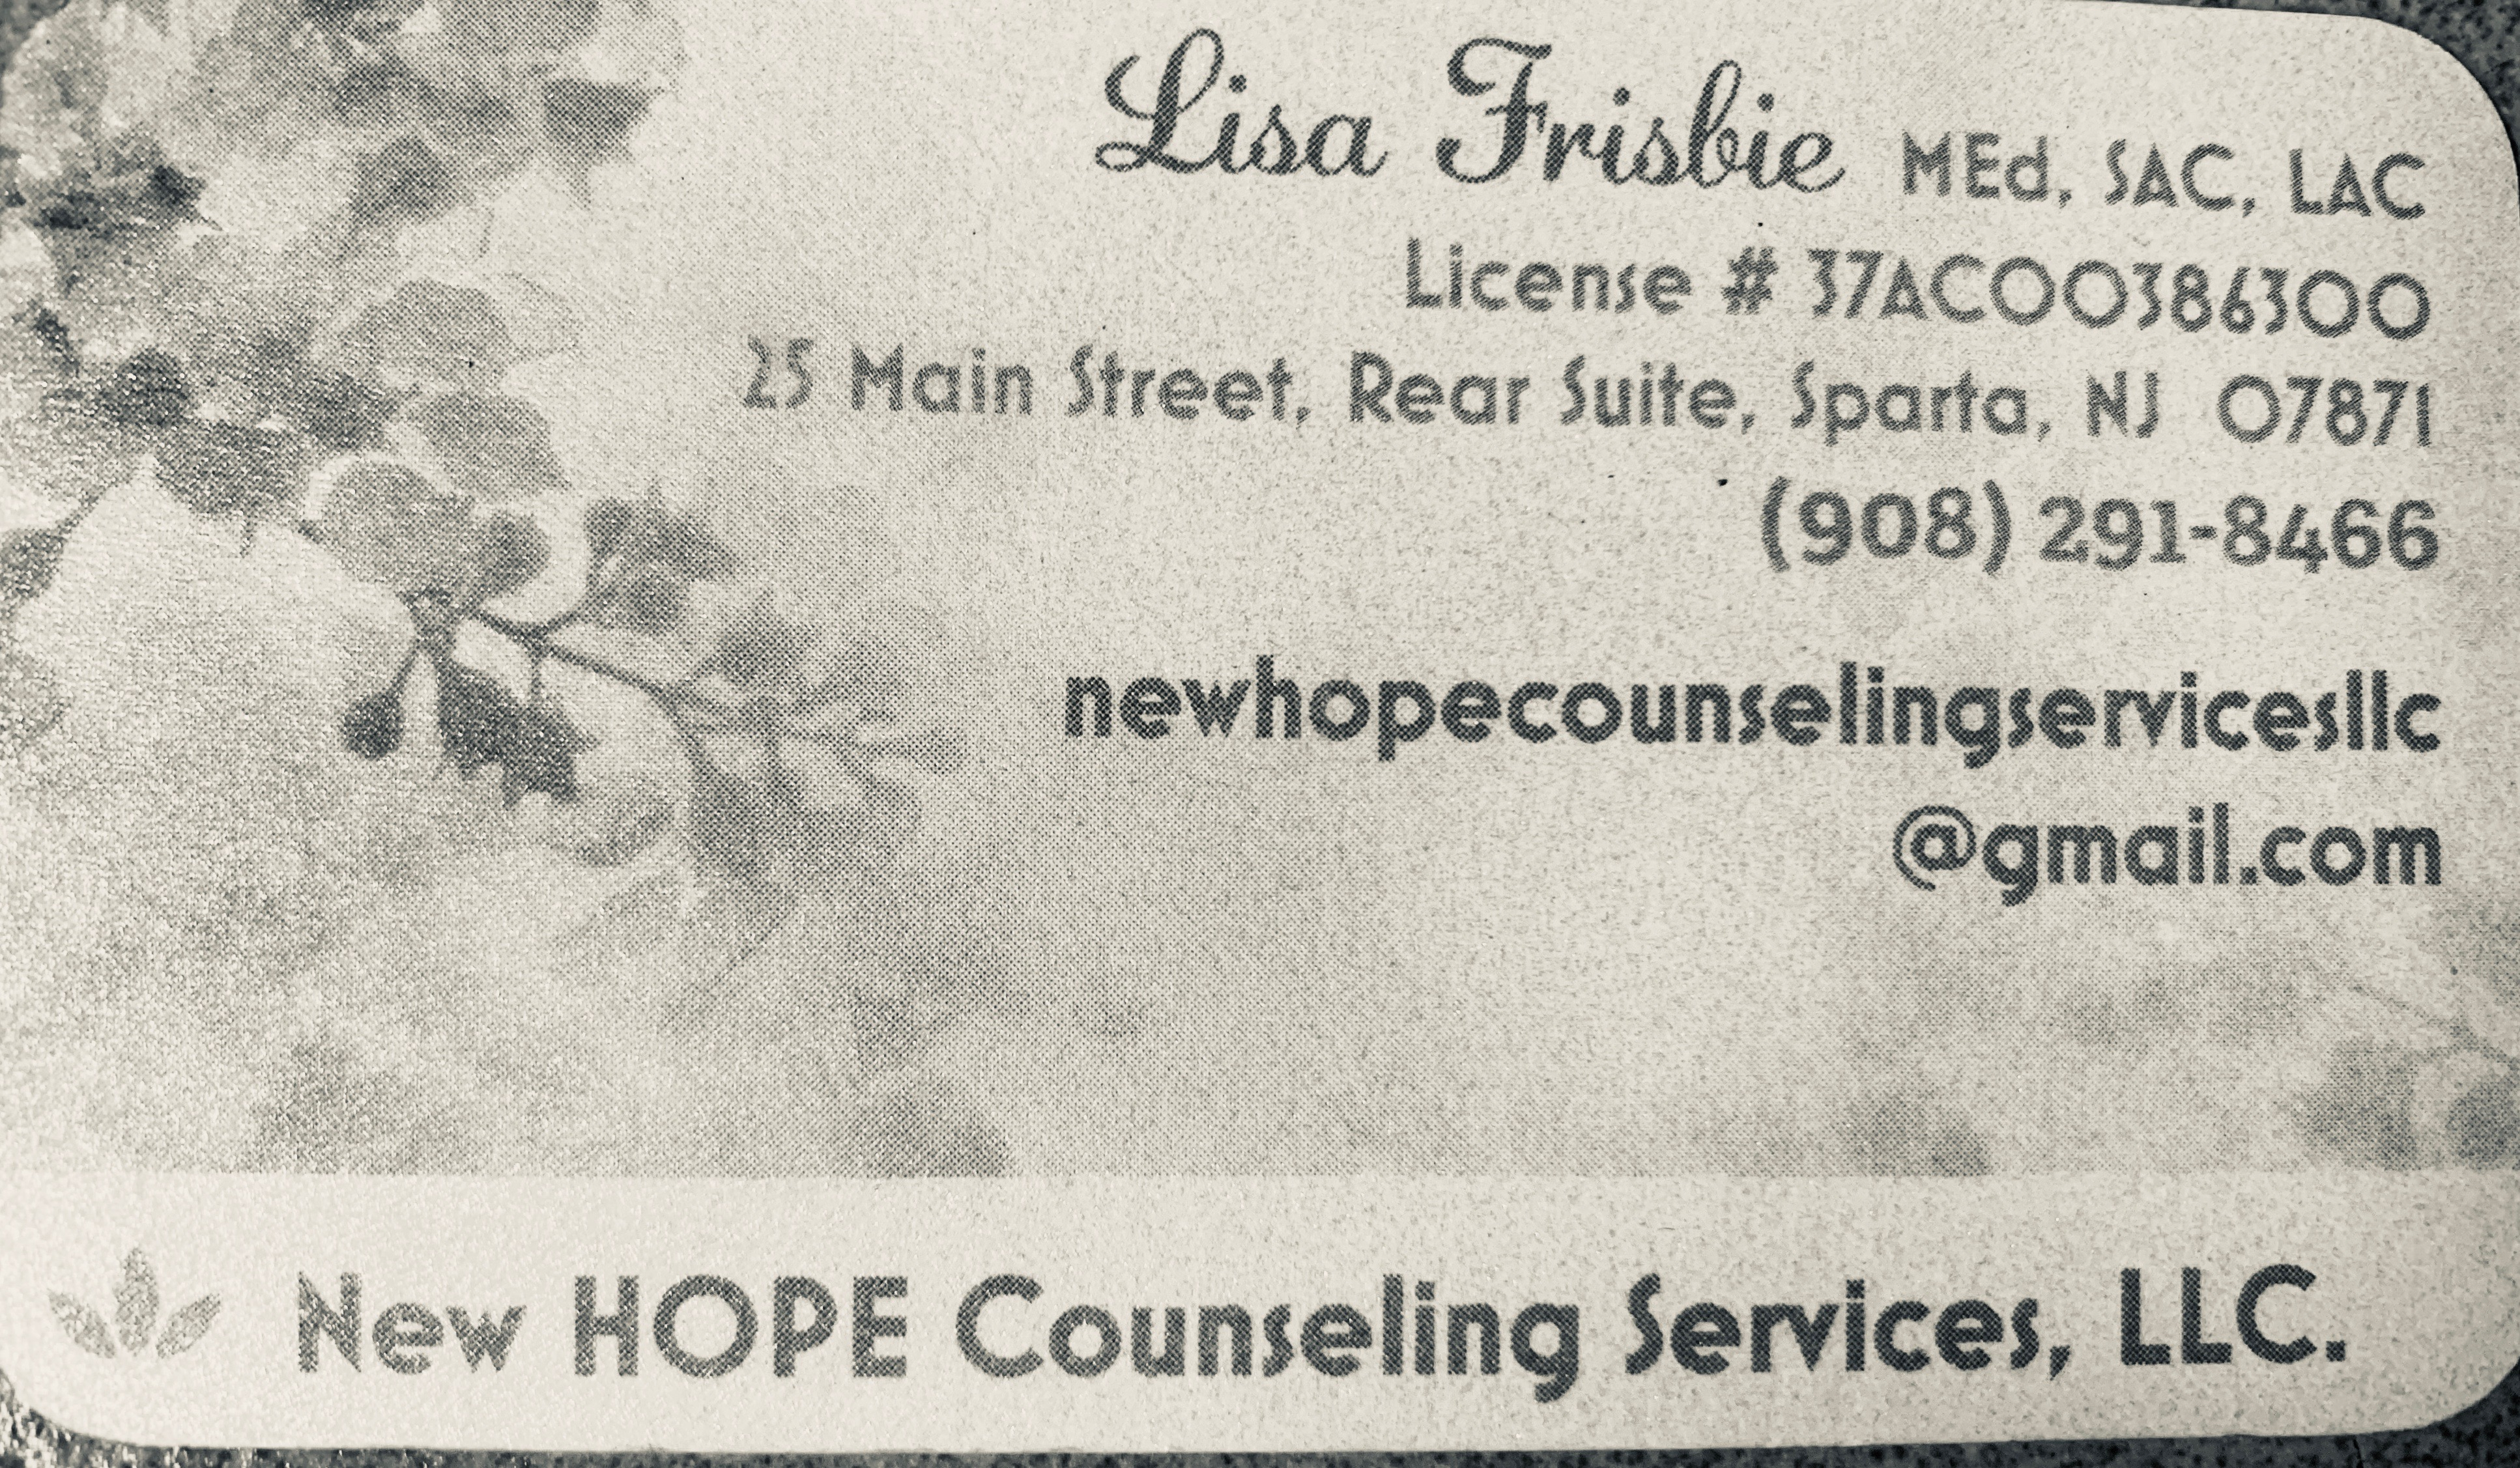 New Hope Counseling Services, LLC